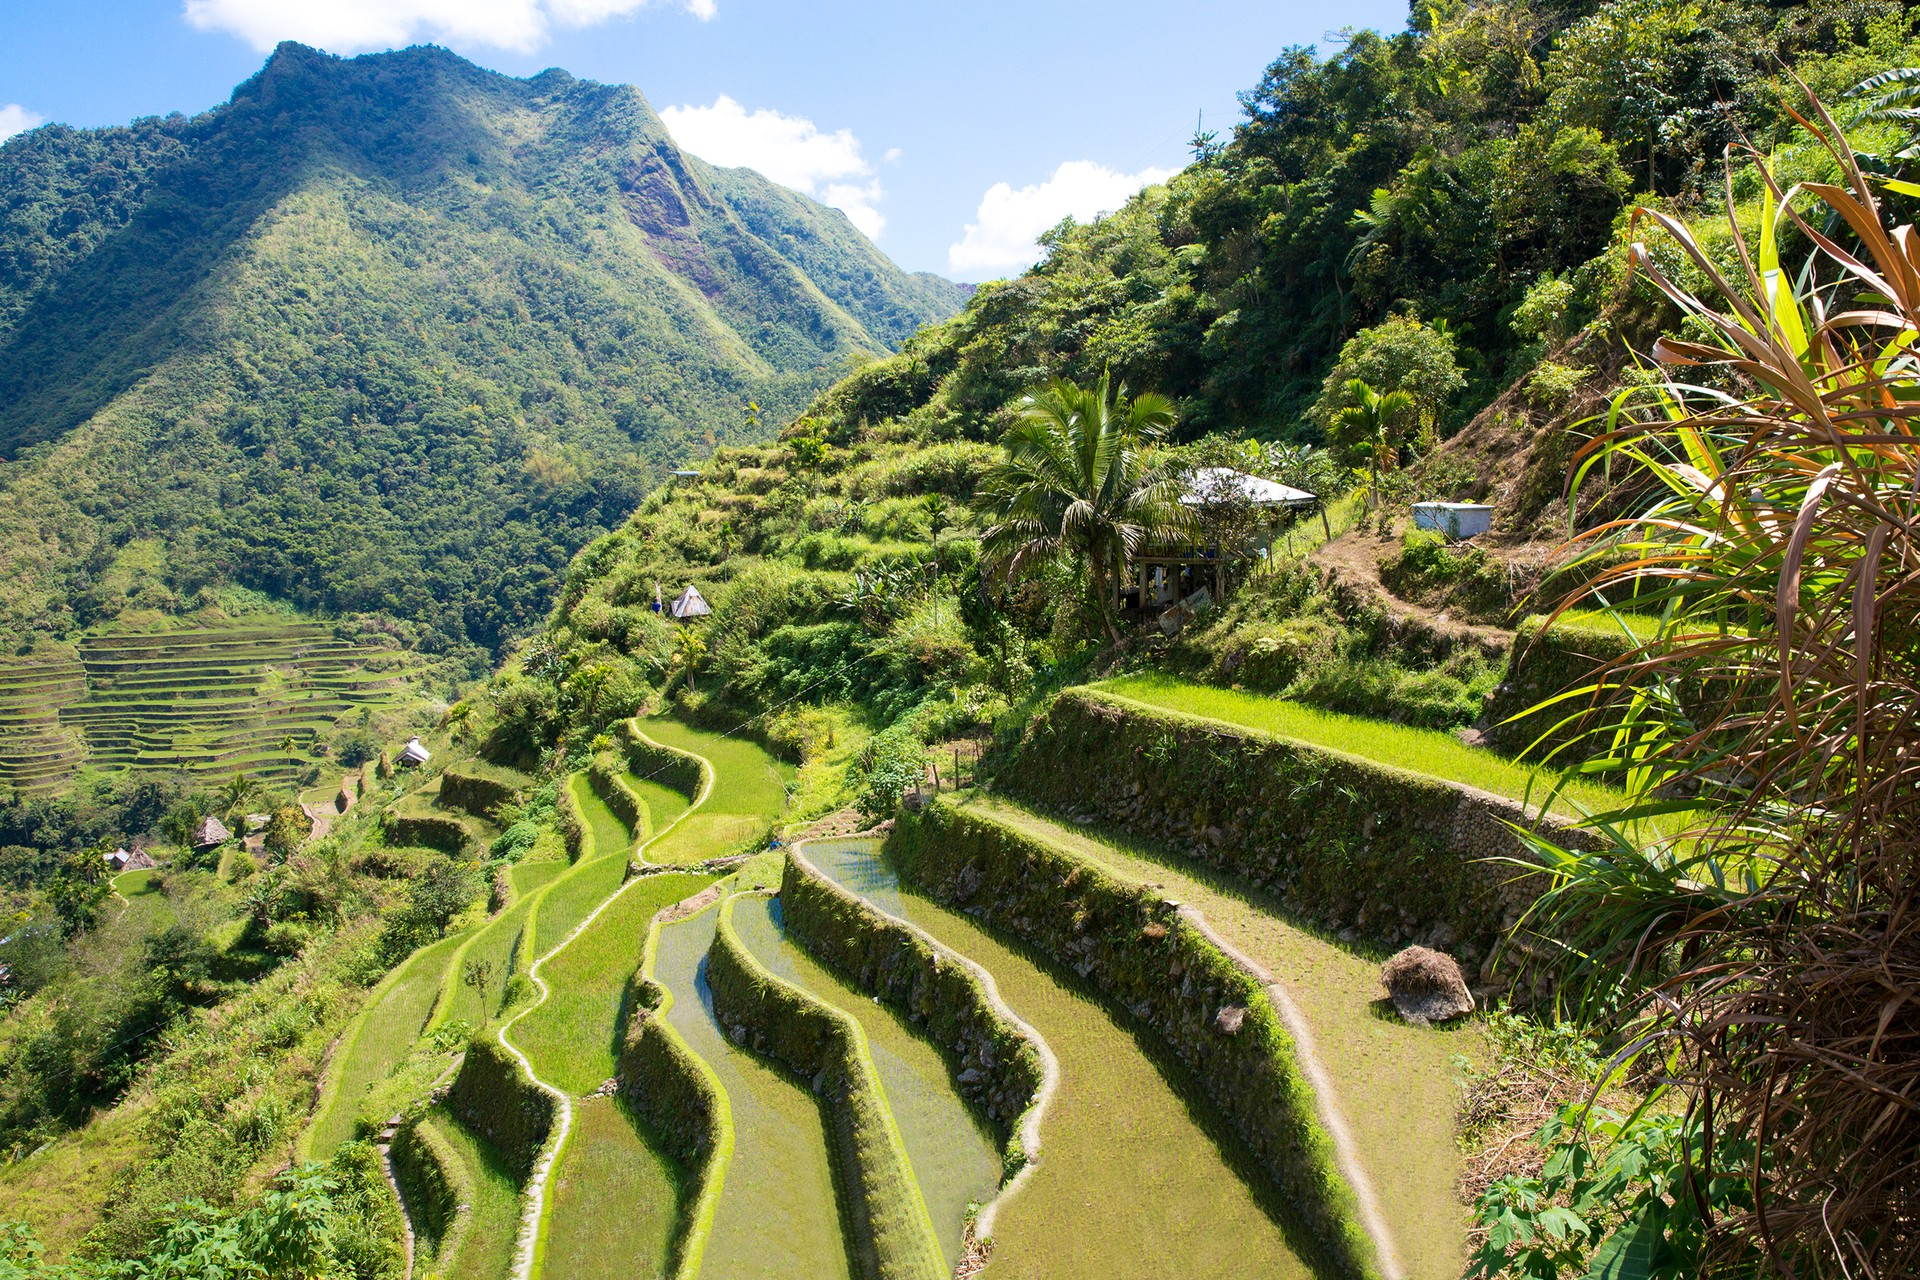 The sloping rice terraces of Banaue